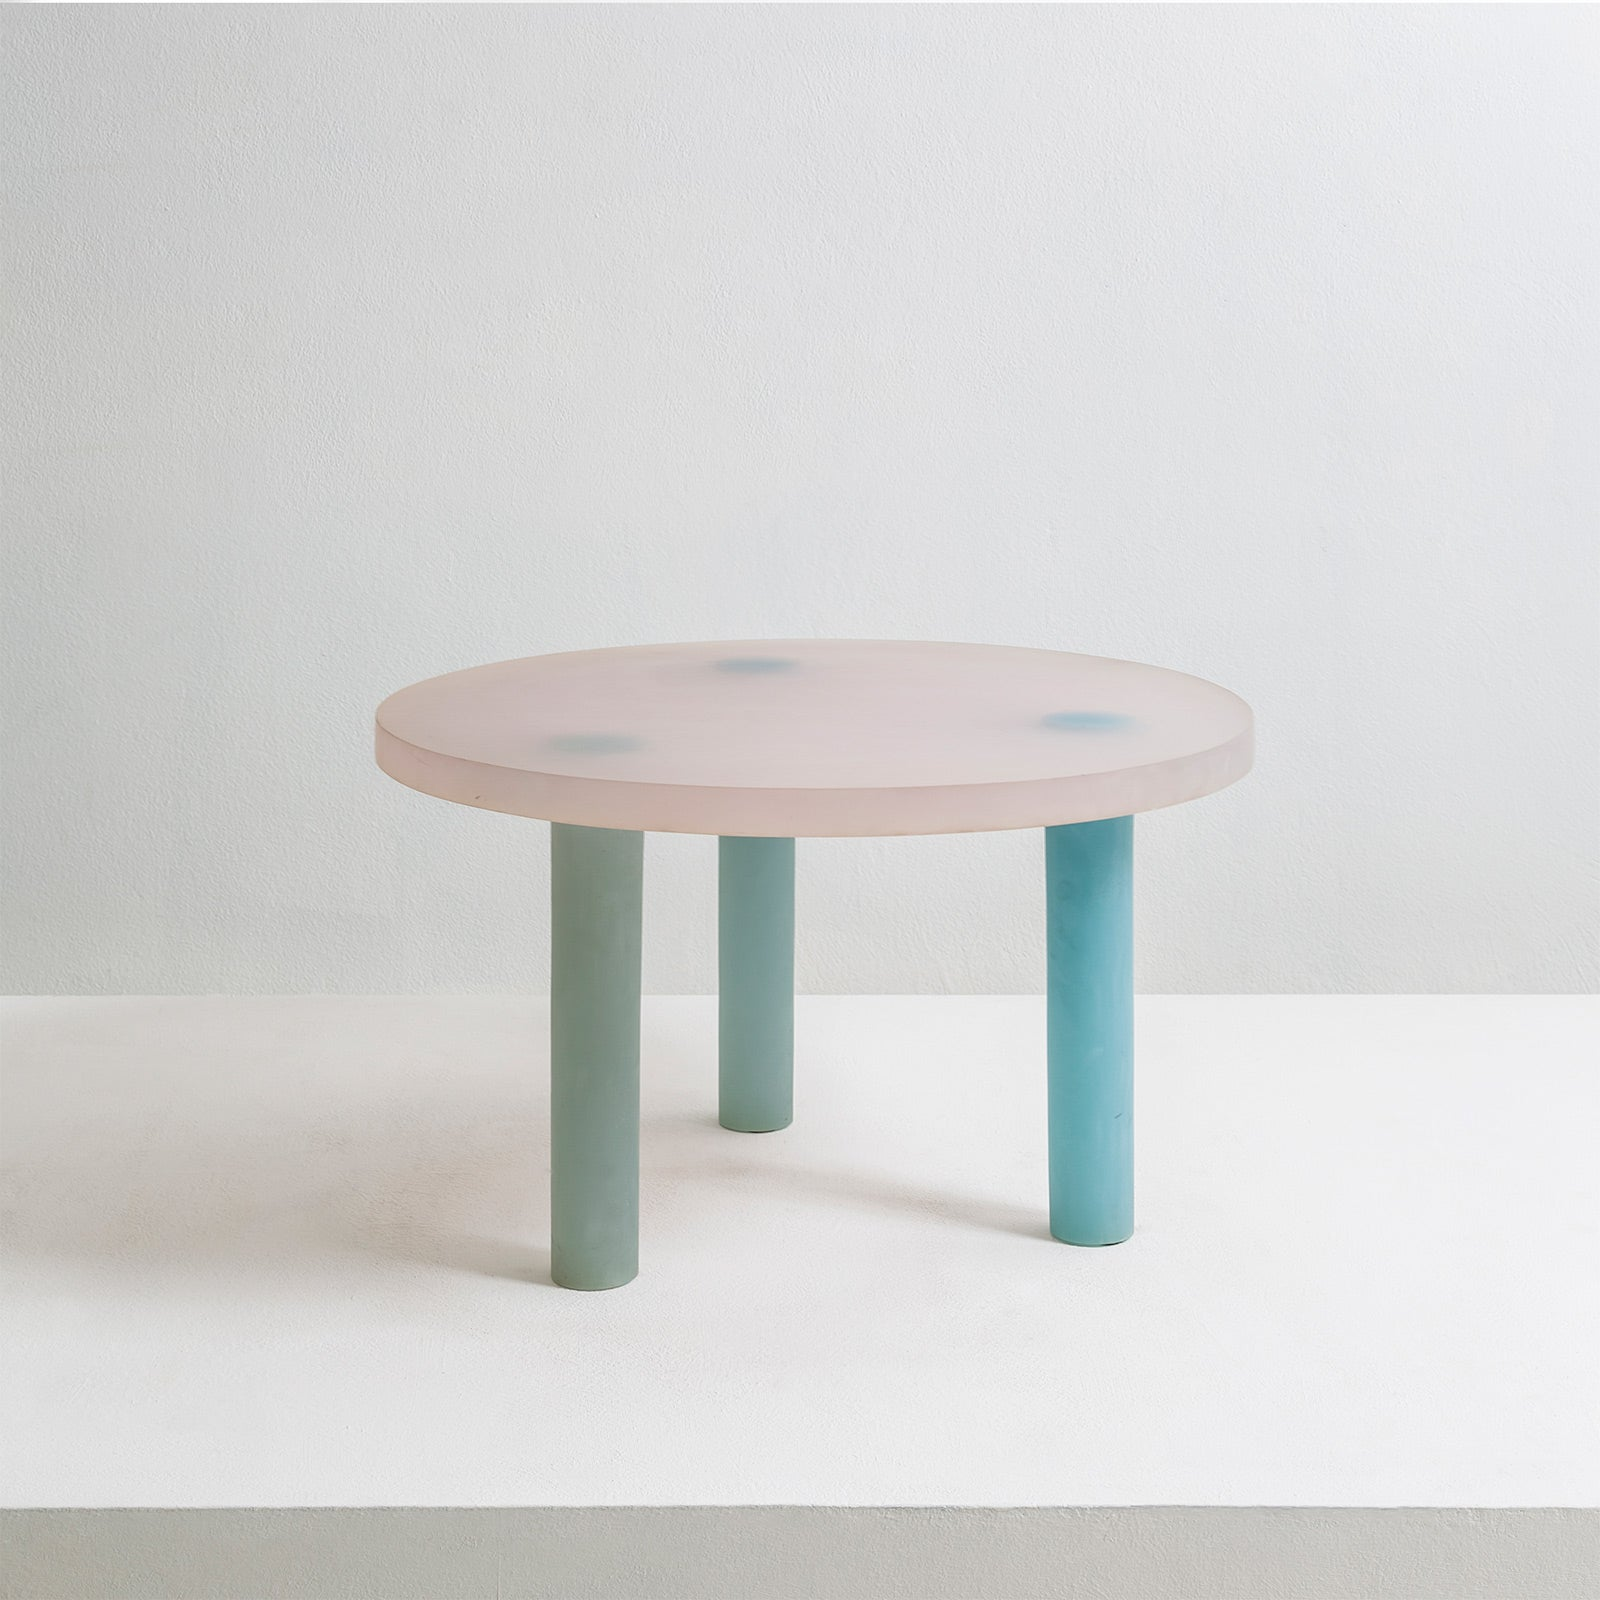 Haze Low Table In White And Blue Resin By Wonmin Park For At 1stdibs